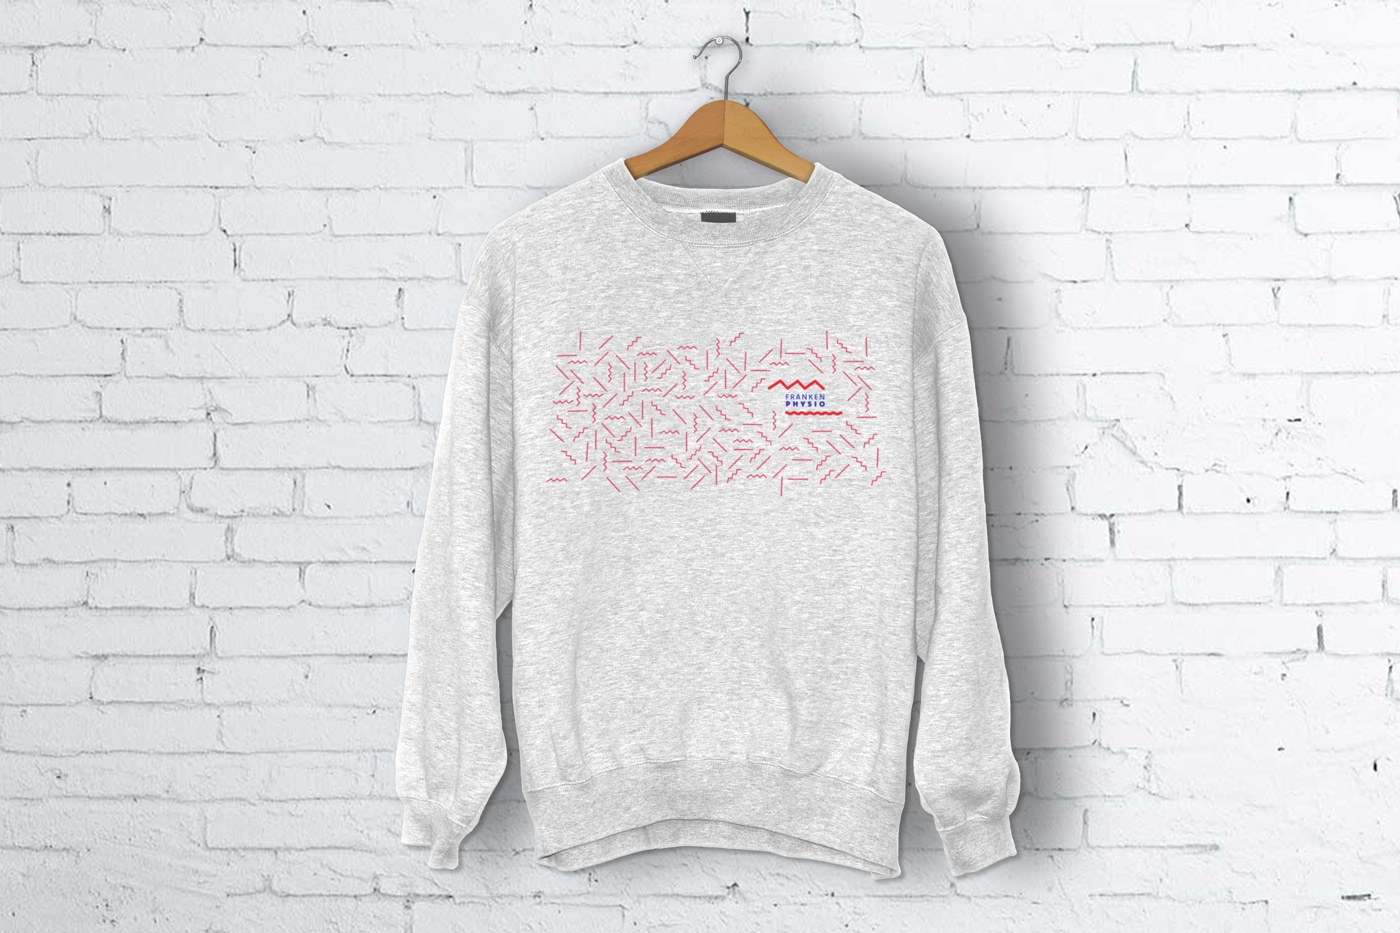 Sweatshirt Design Physiotherapie Praxis